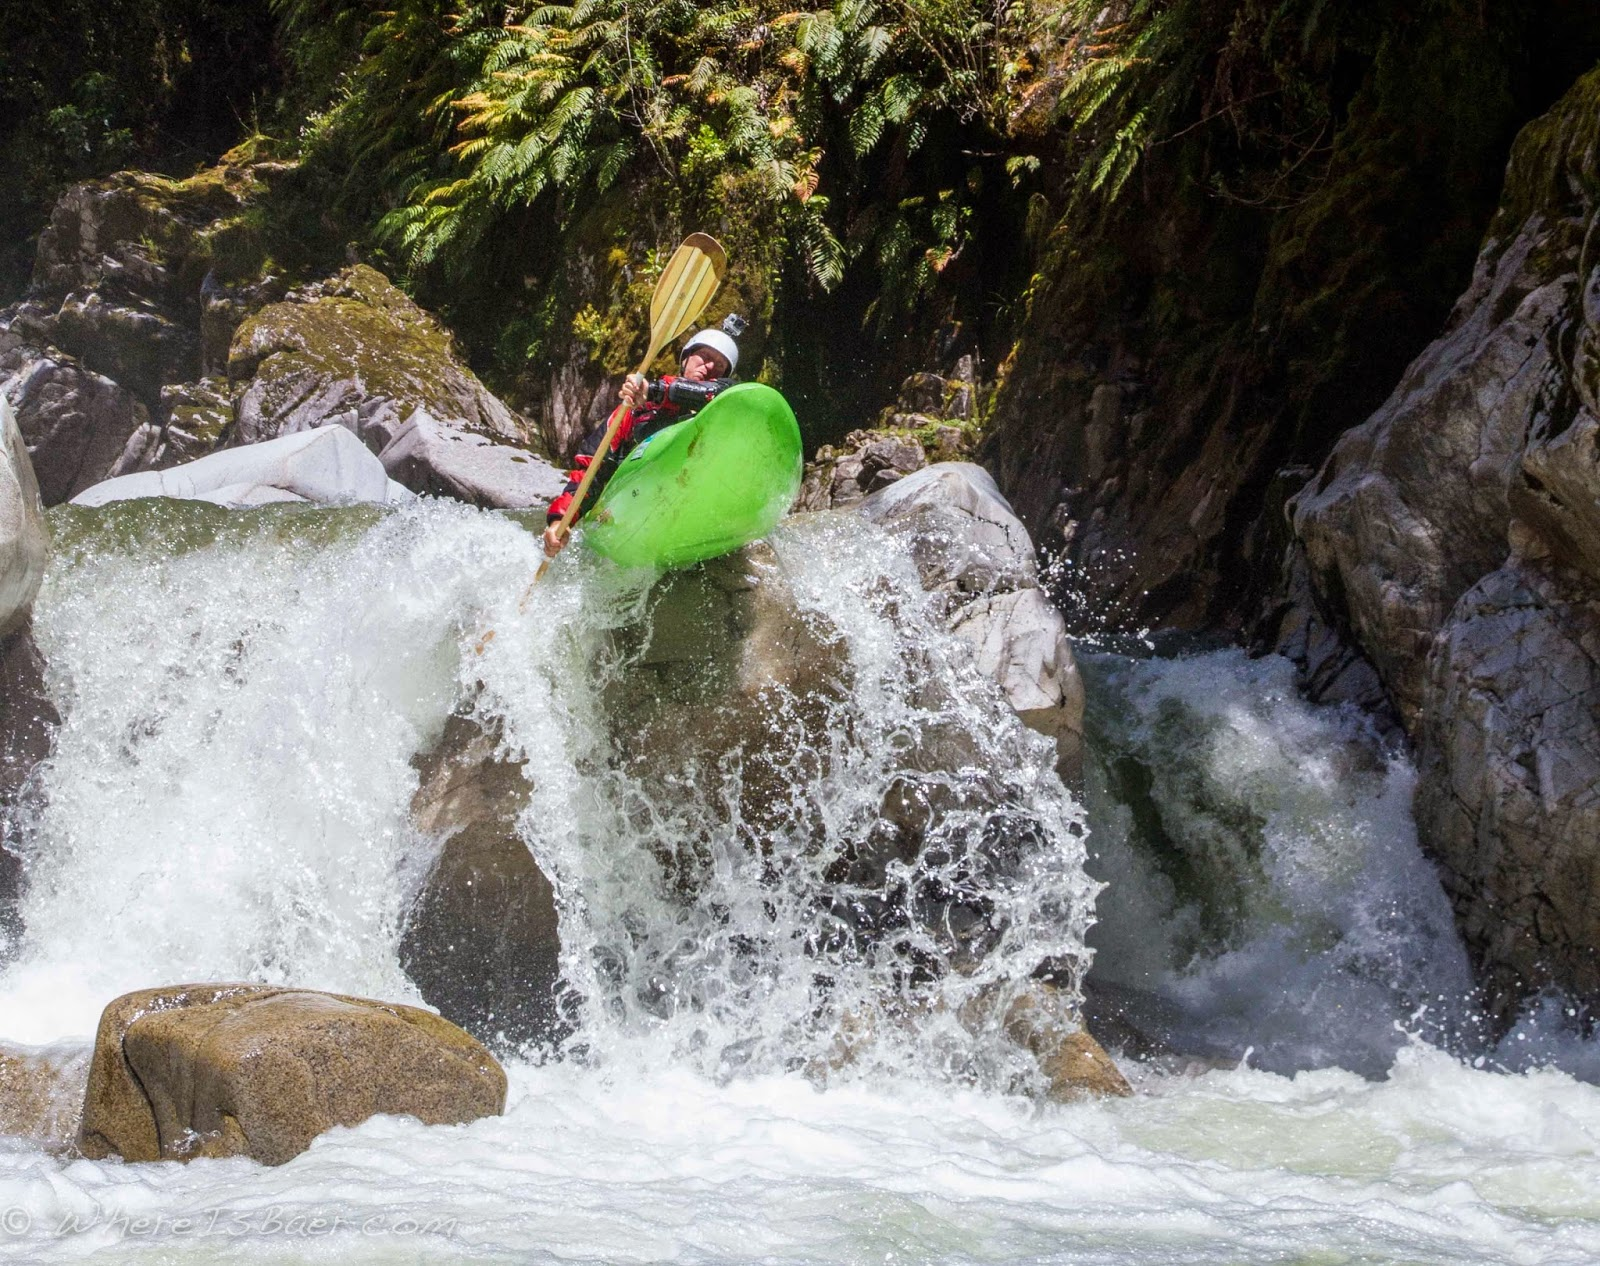 clench those cheeks the landing zone is narrow, upper kakopatahi river NZ, new zealand, chris baer